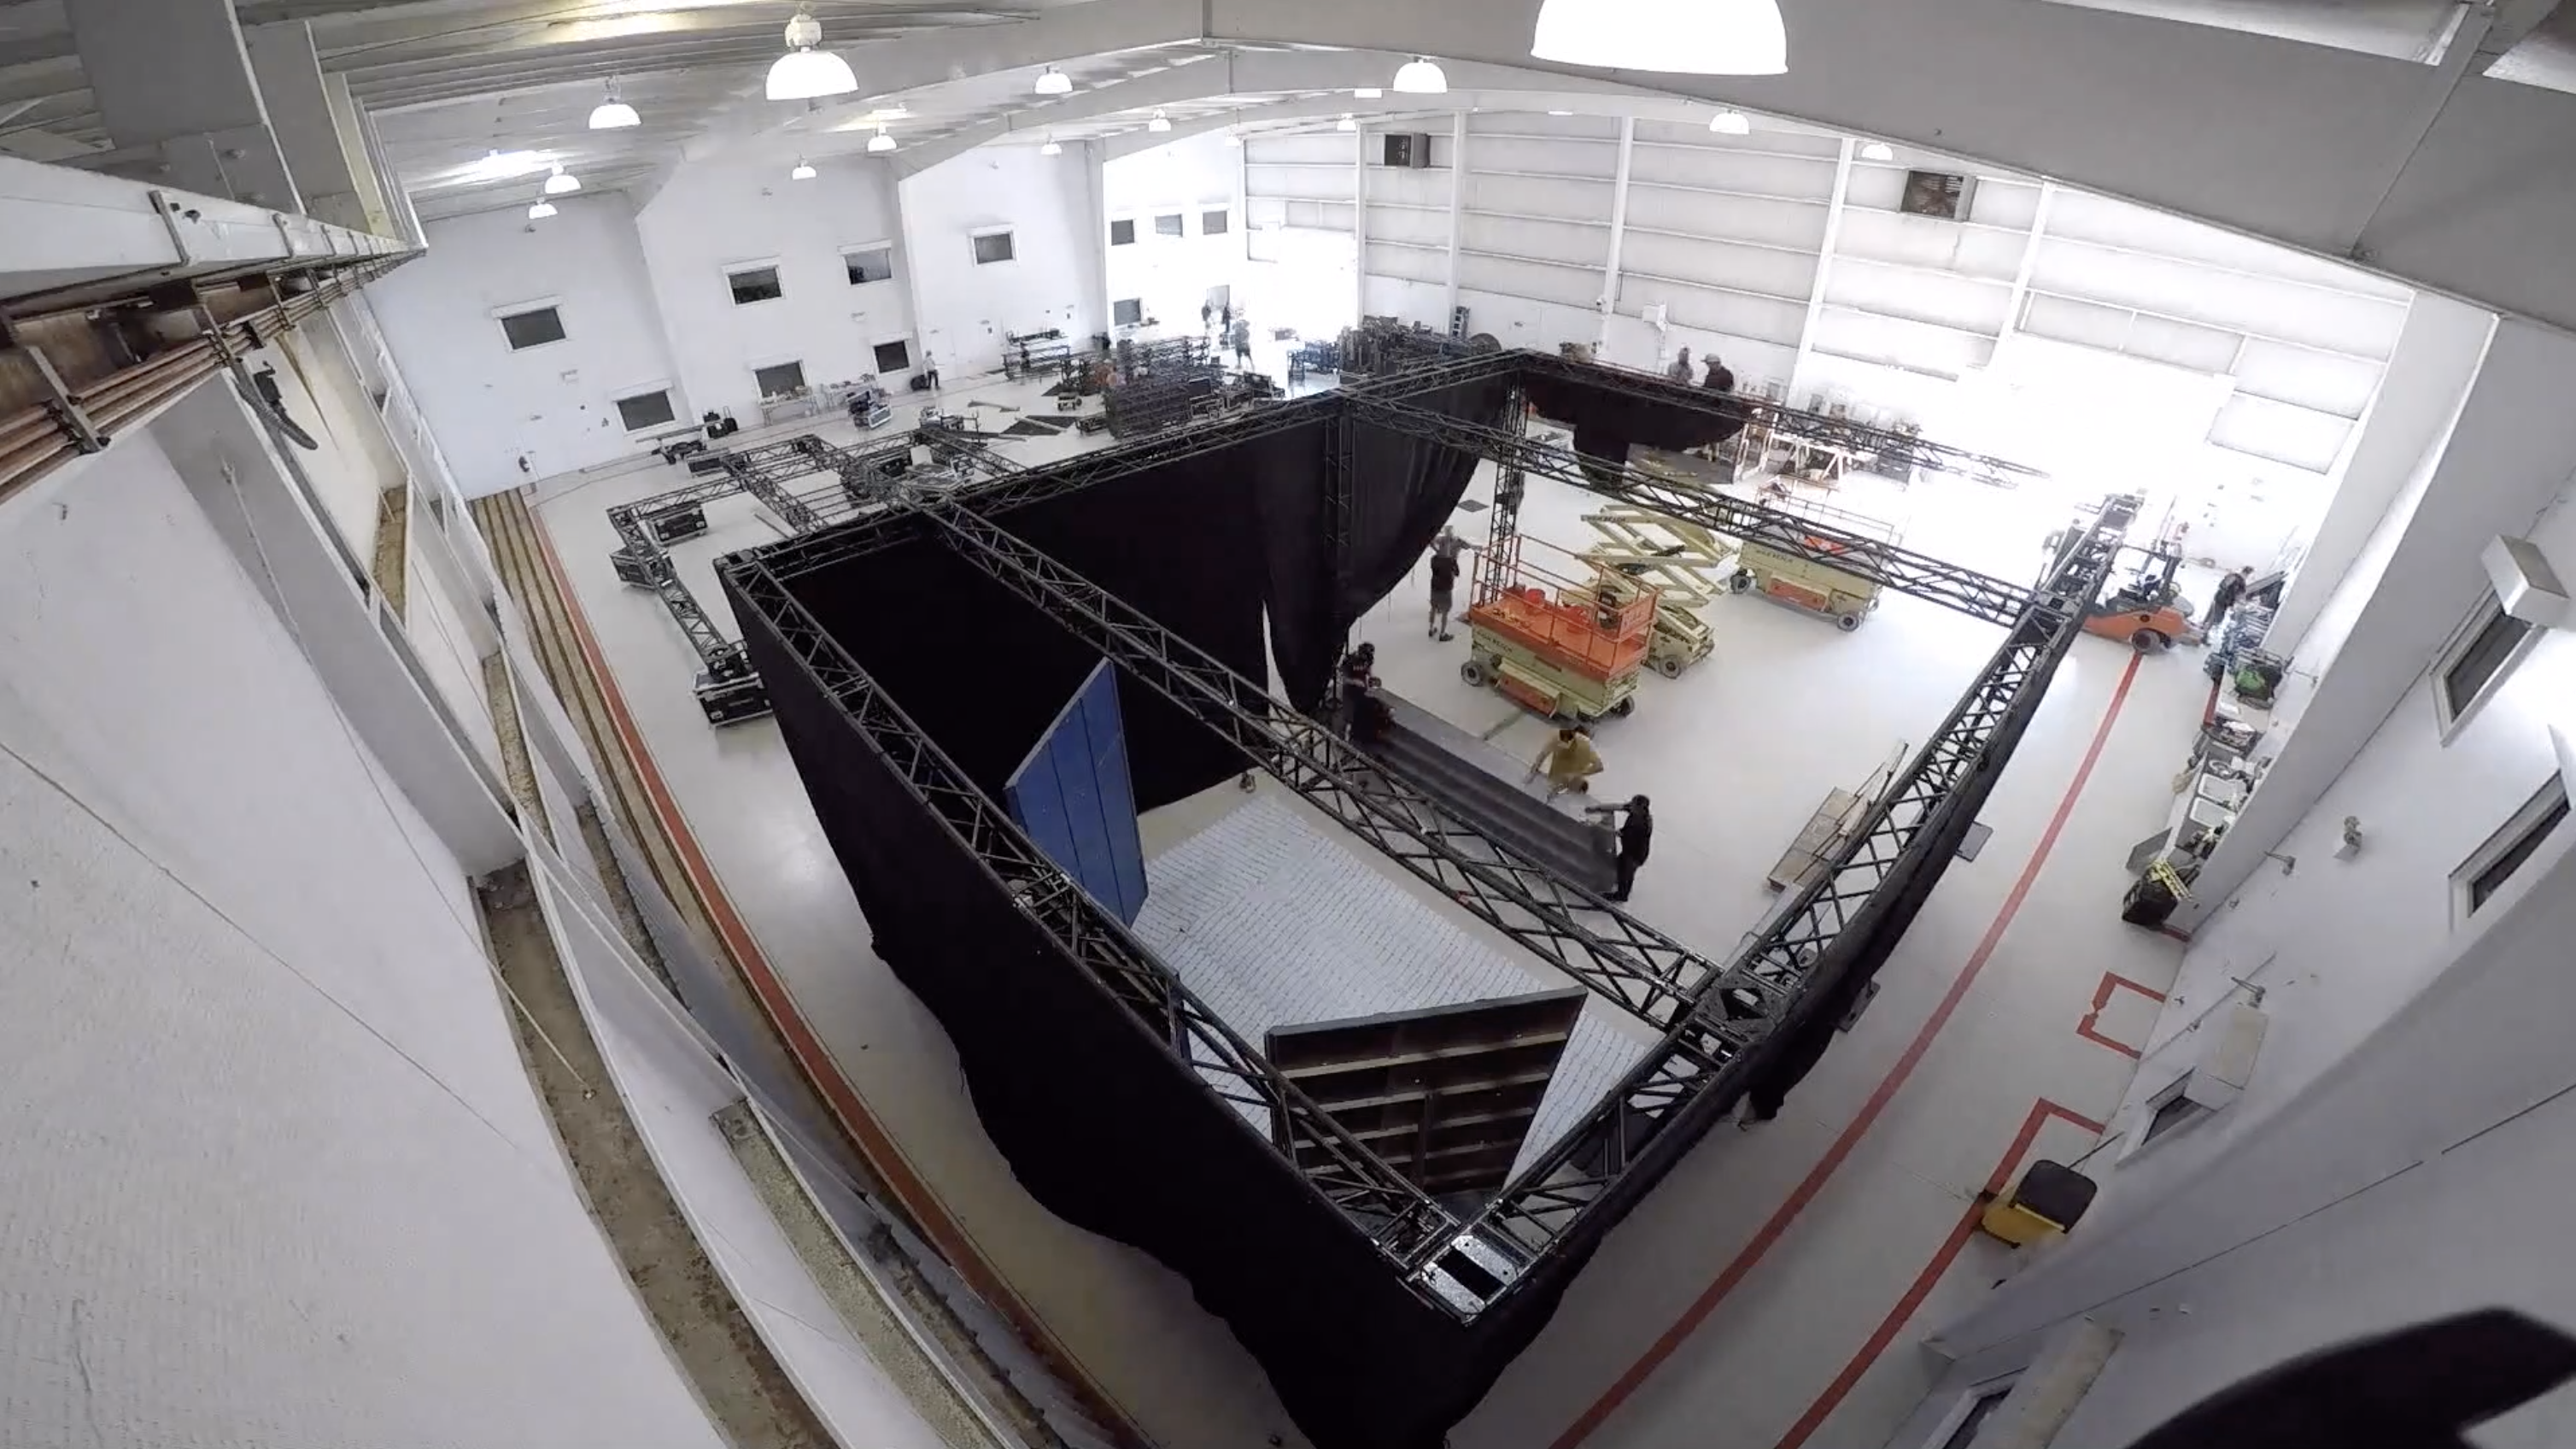 Video: See a timelapse of the Fox Sports NASCAR hangar shoot being put together